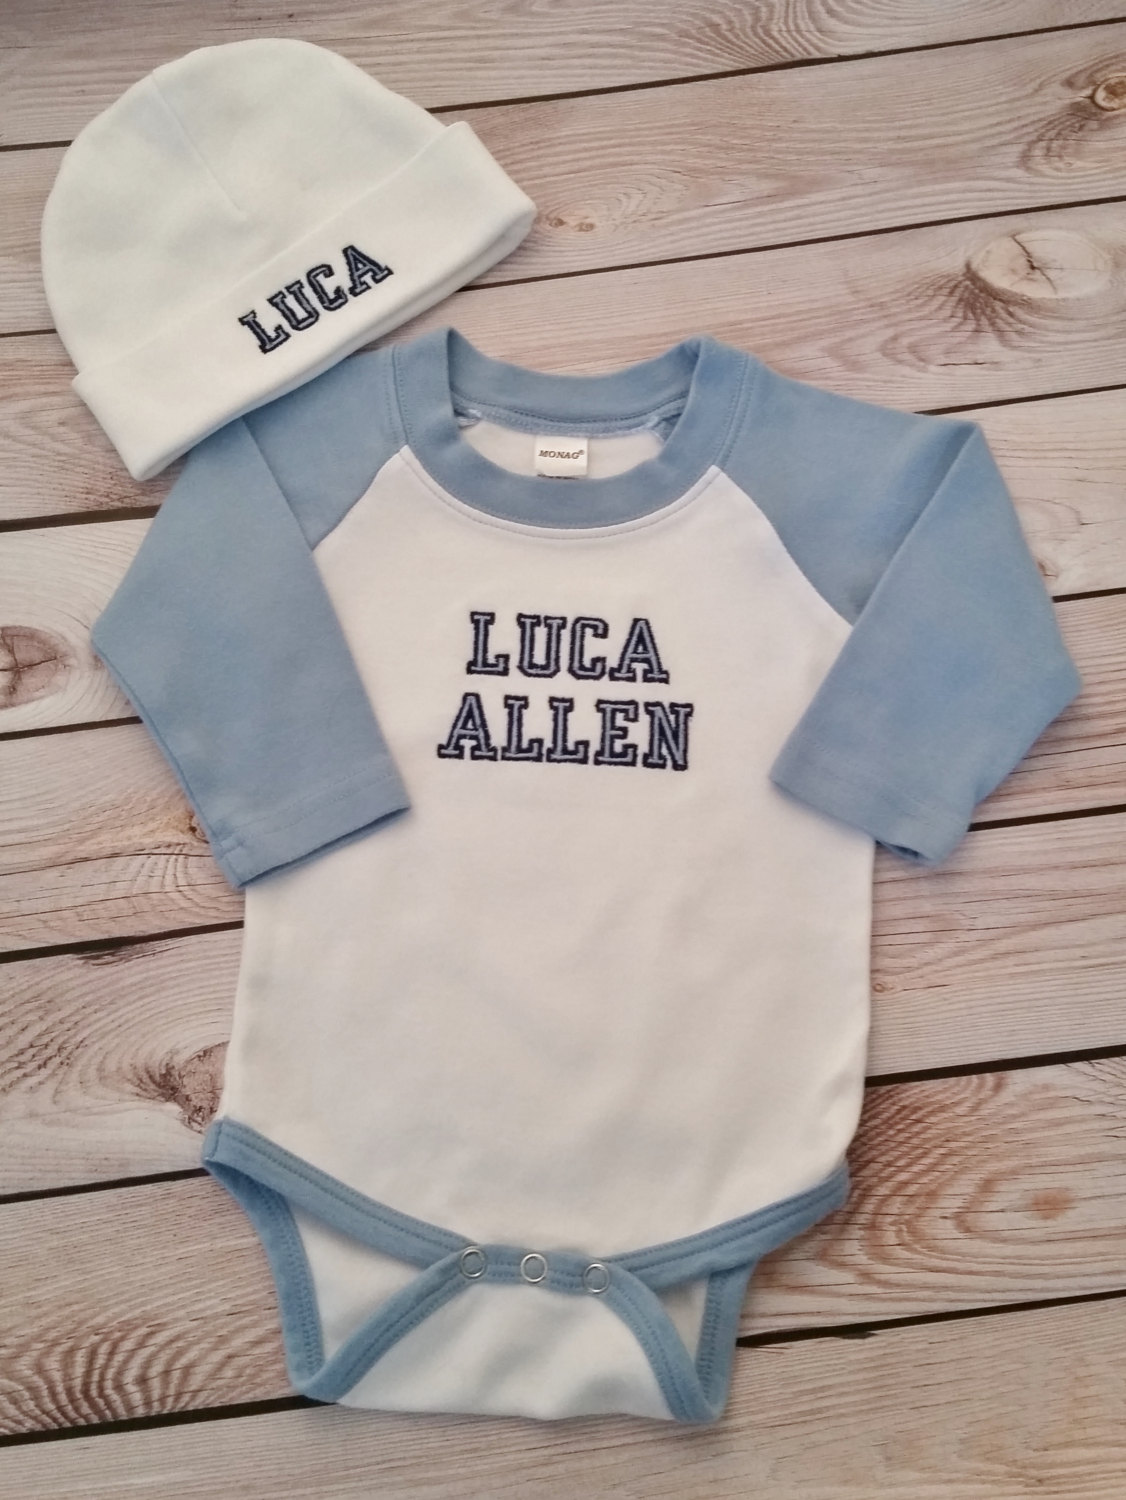 488e4c09688 Baby Boy Coming Home Outfit Newborn Baby Boy Hat Personalized Outfit Baby  Boy Gift Baby Boy